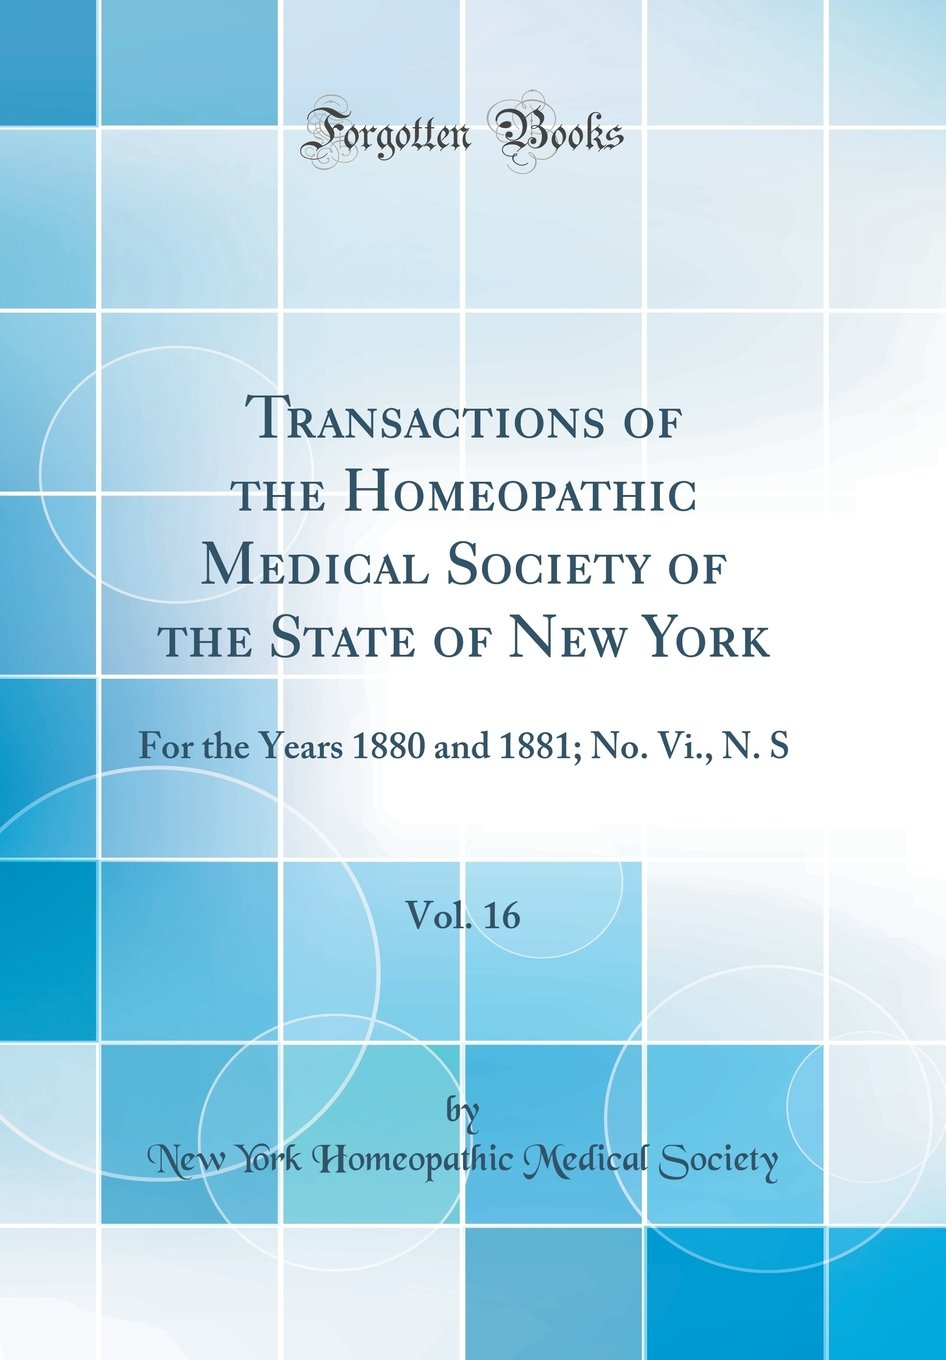 Transactions of the Homeopathic Medical Society of the State of New York, Vol. 16: For the Years 1880 and 1881; No. VI., N. S (Classic Reprint) pdf epub